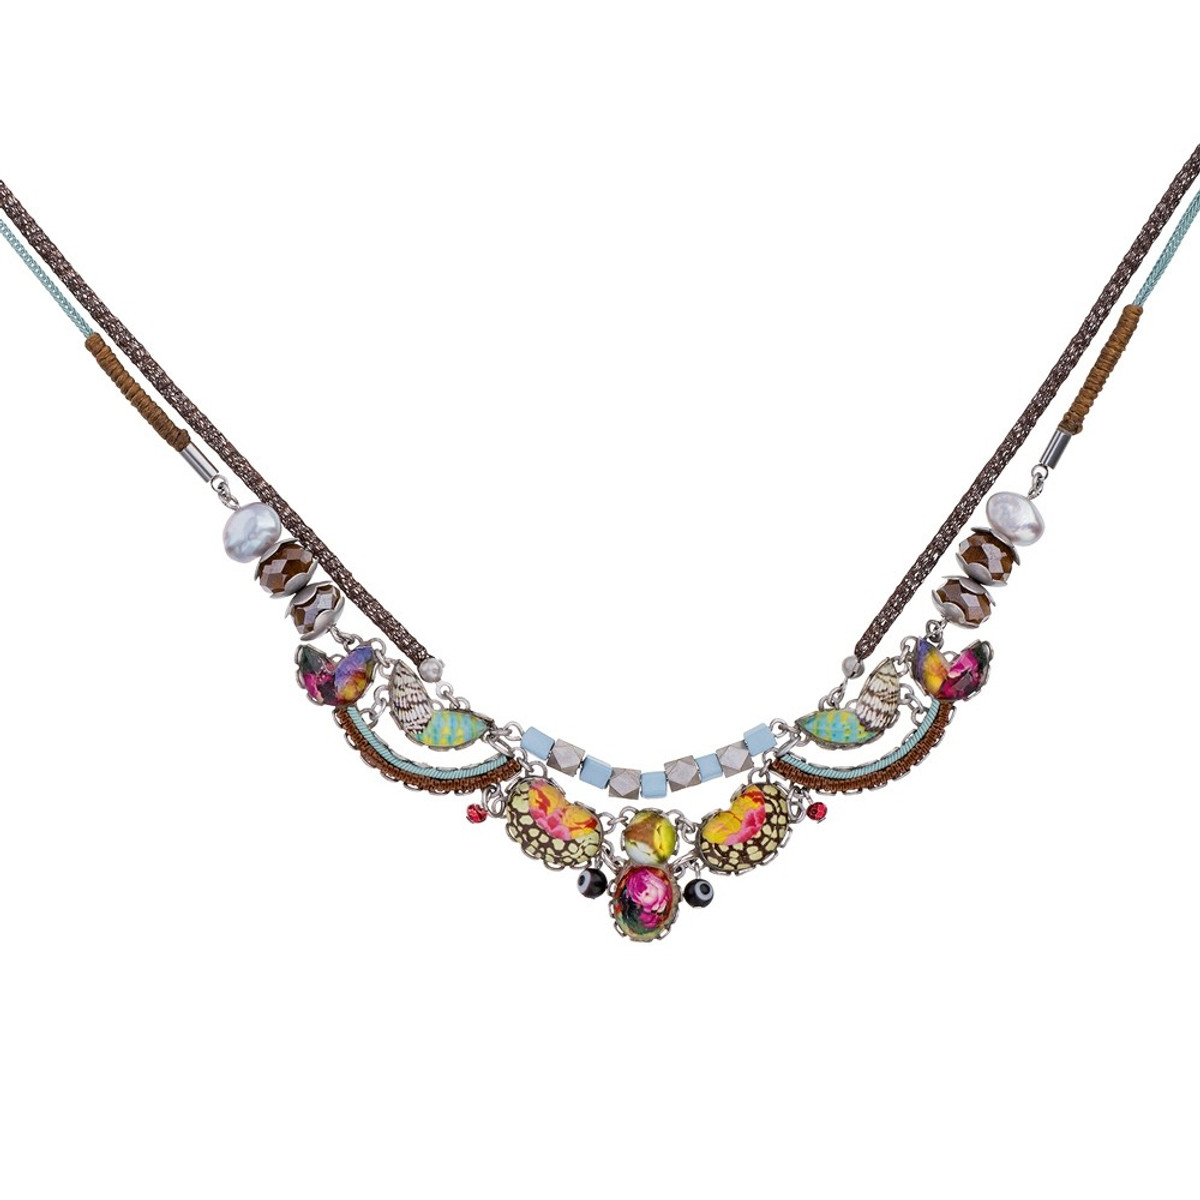 Ayala Bar Unforgettable Fire Island Fantasy Necklace - New Arrival